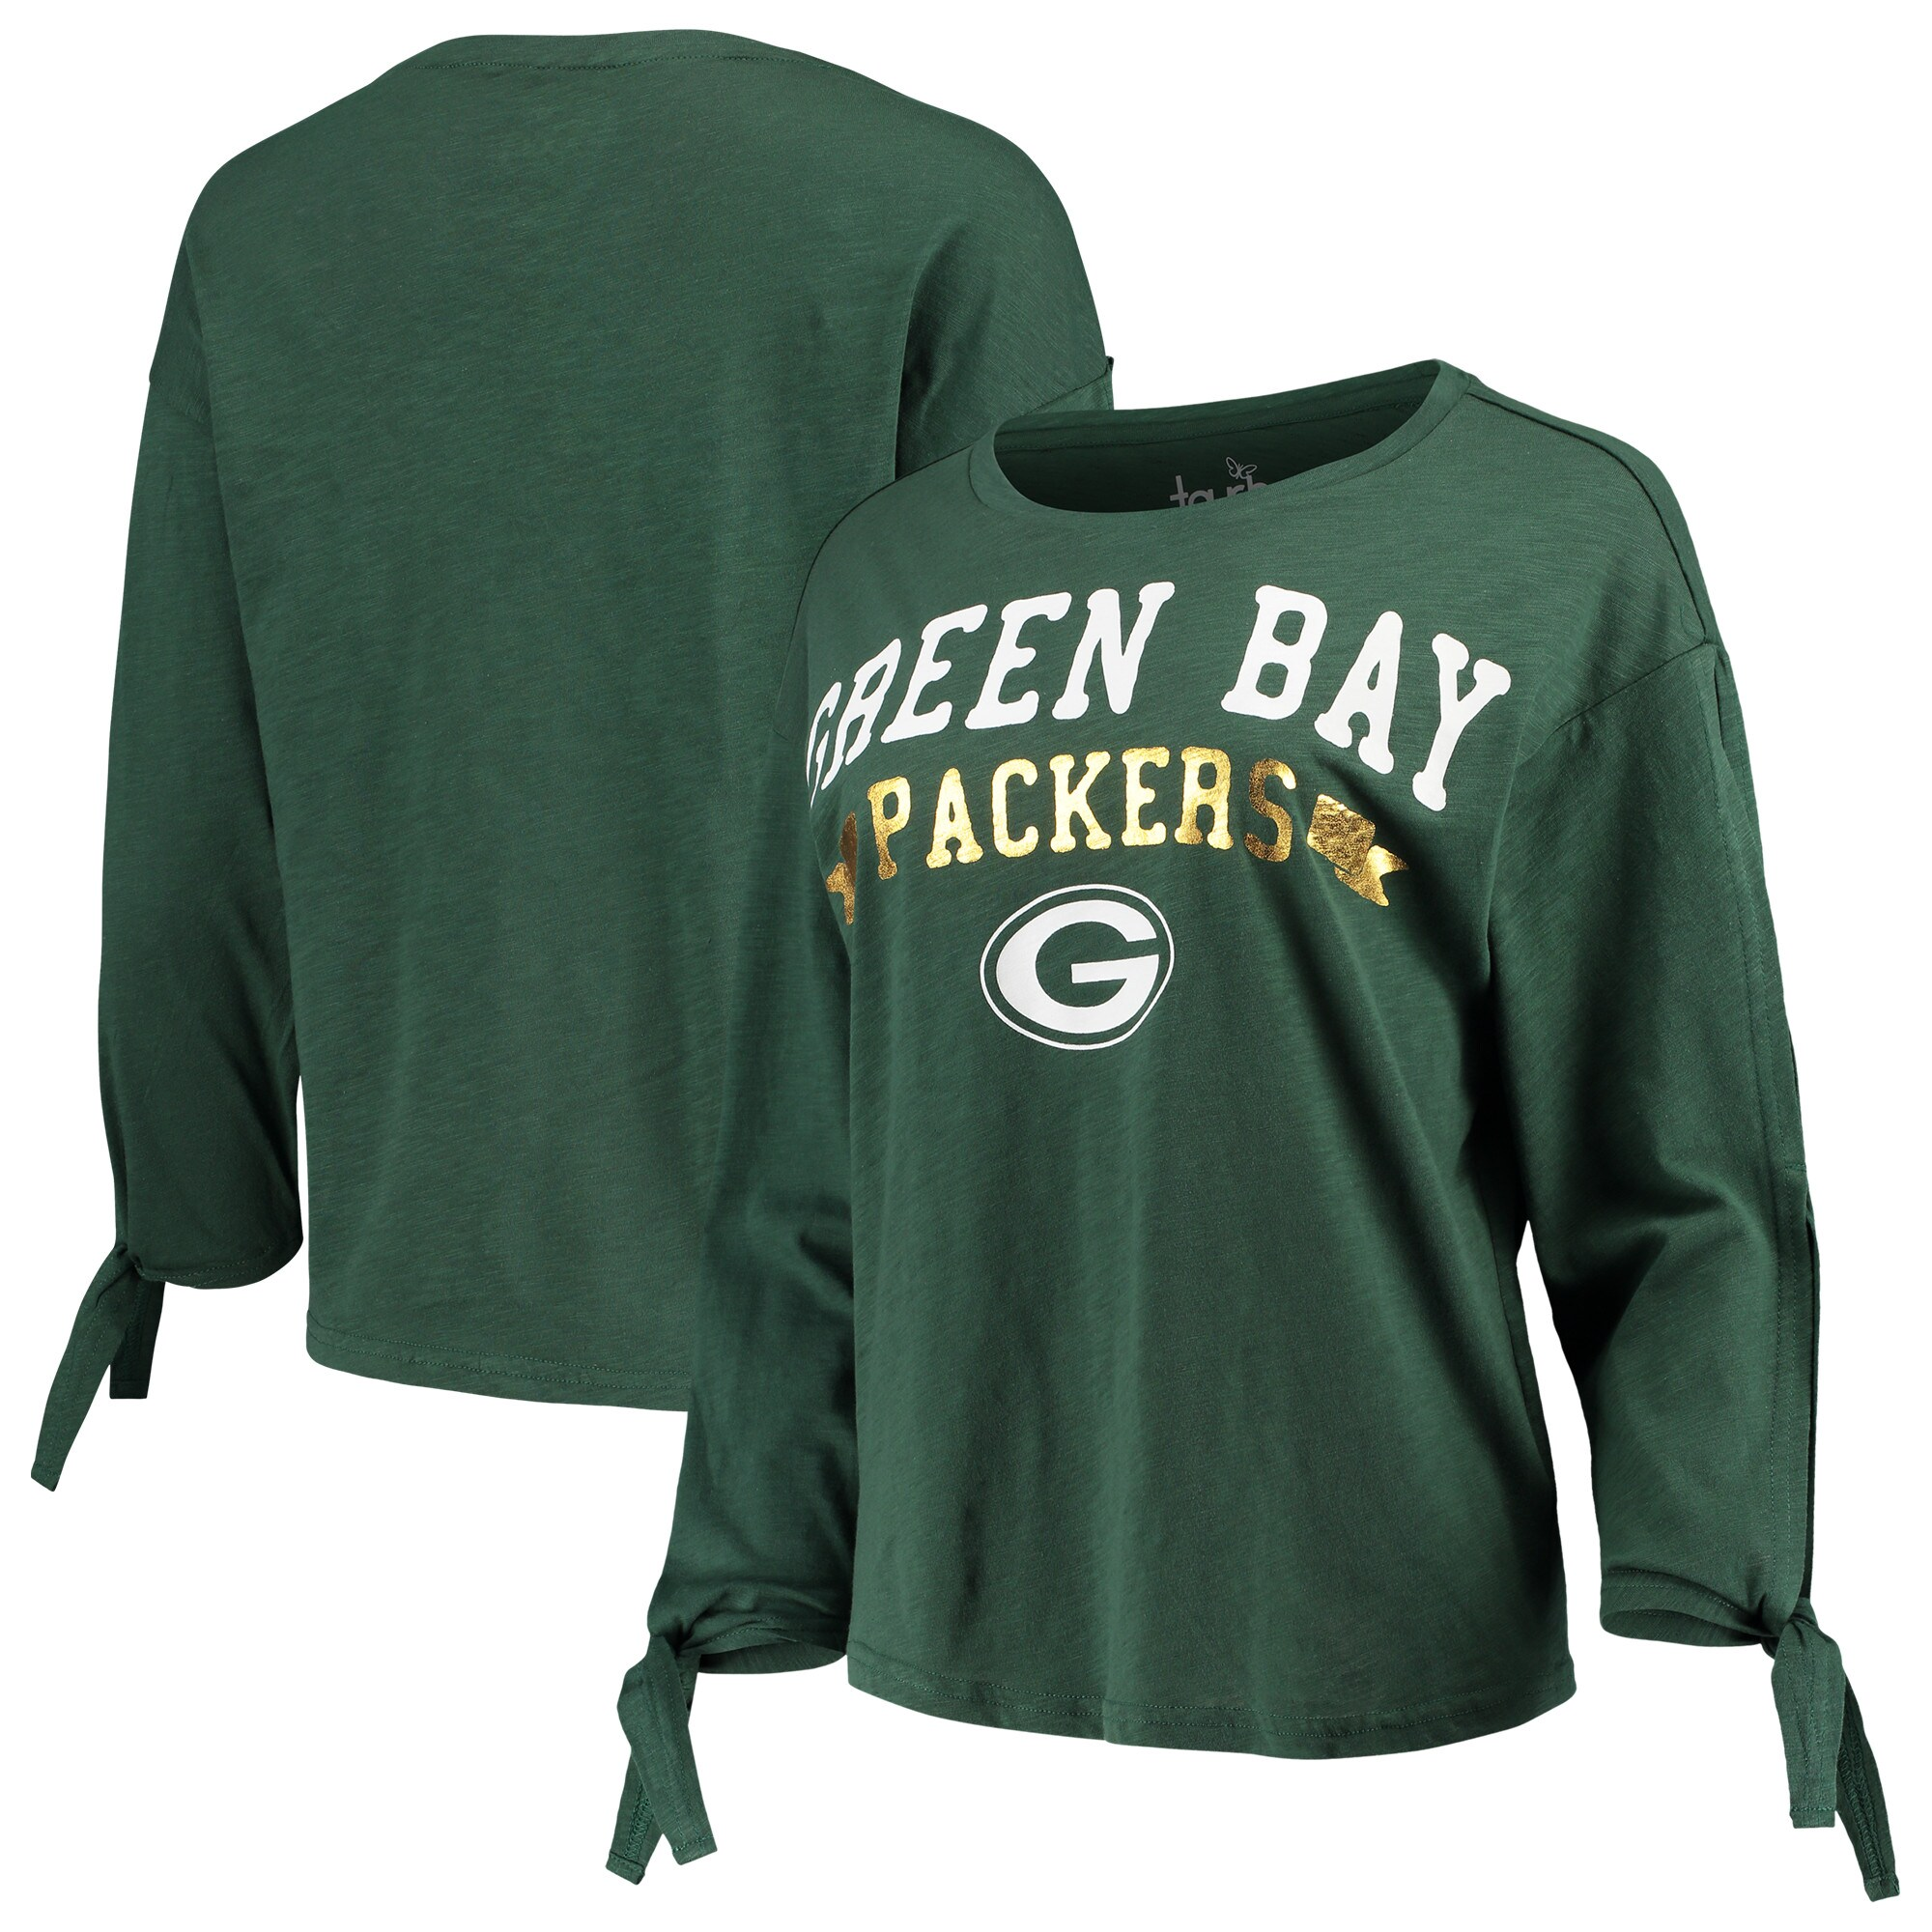 Green Bay Packers Touch by Alyssa Milano Women's On The Fly Long Sleeve T-Shirt - Green